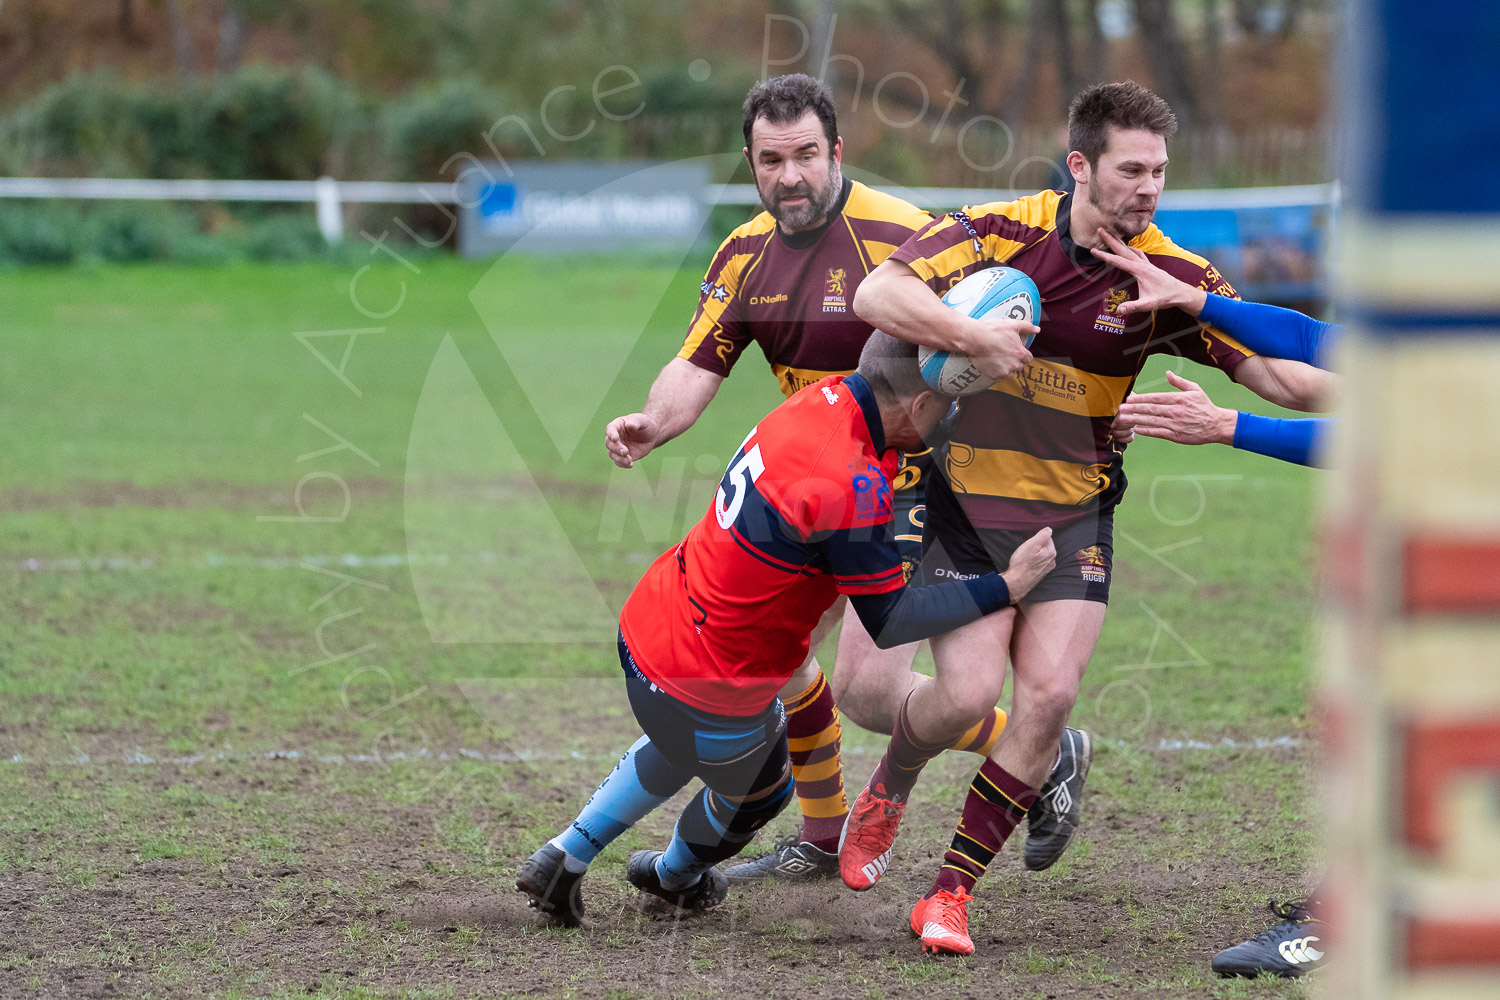 20181027 Amp Extras vs St Neots 2nd XV #2261